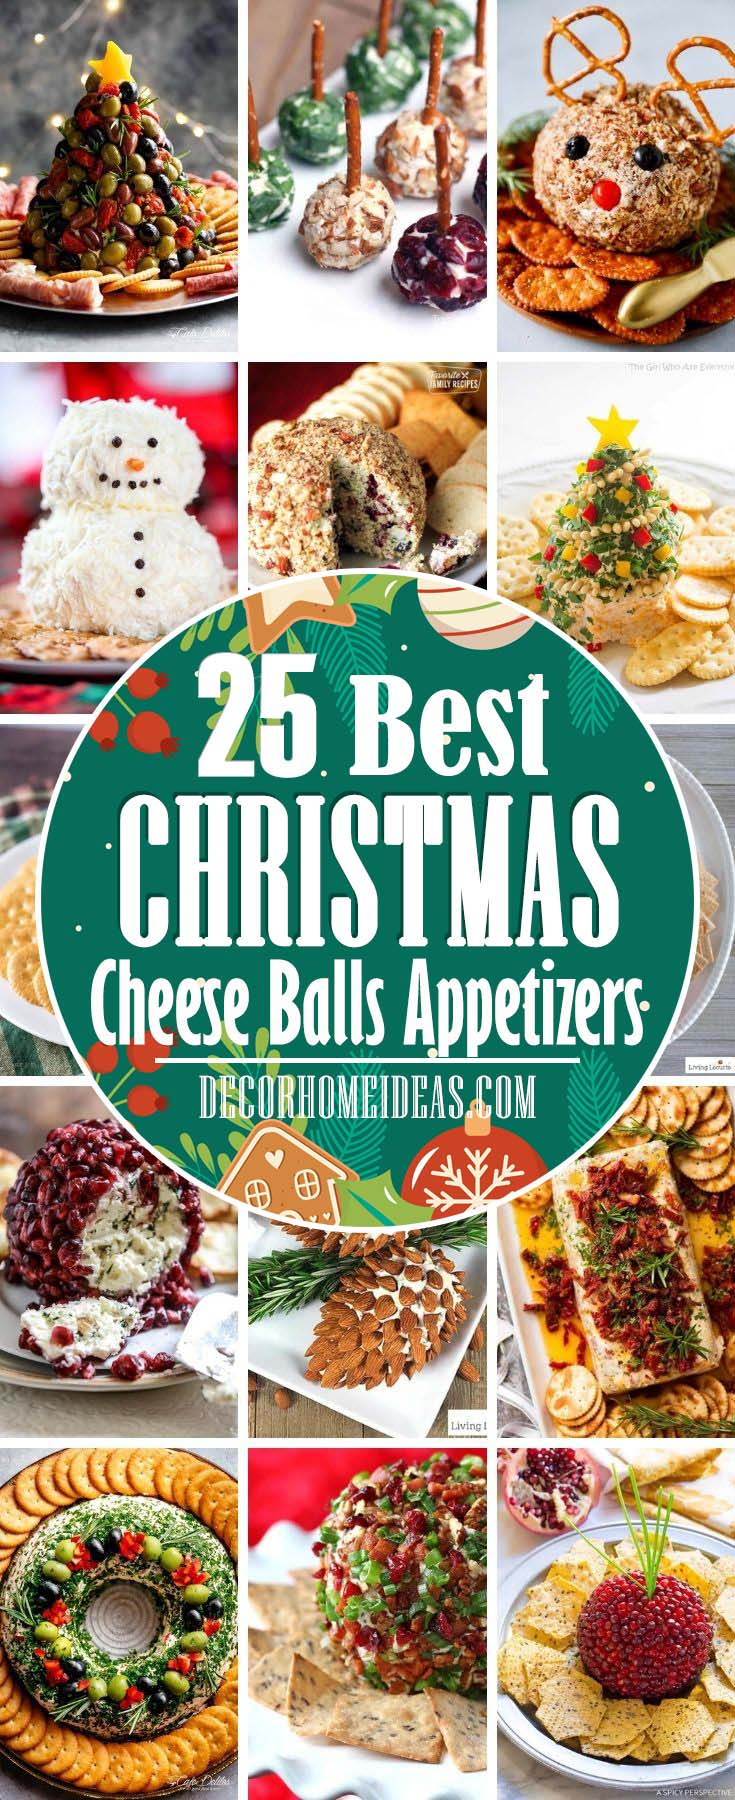 Best Christmas Cheese Balls Appetizers. These Christmas cheese balls appetizers are perfect for kicking off Christmas dinner or a festive holiday party. From snowmen to Christmas trees, these will keep the hunger at bay. #decorhomeideas